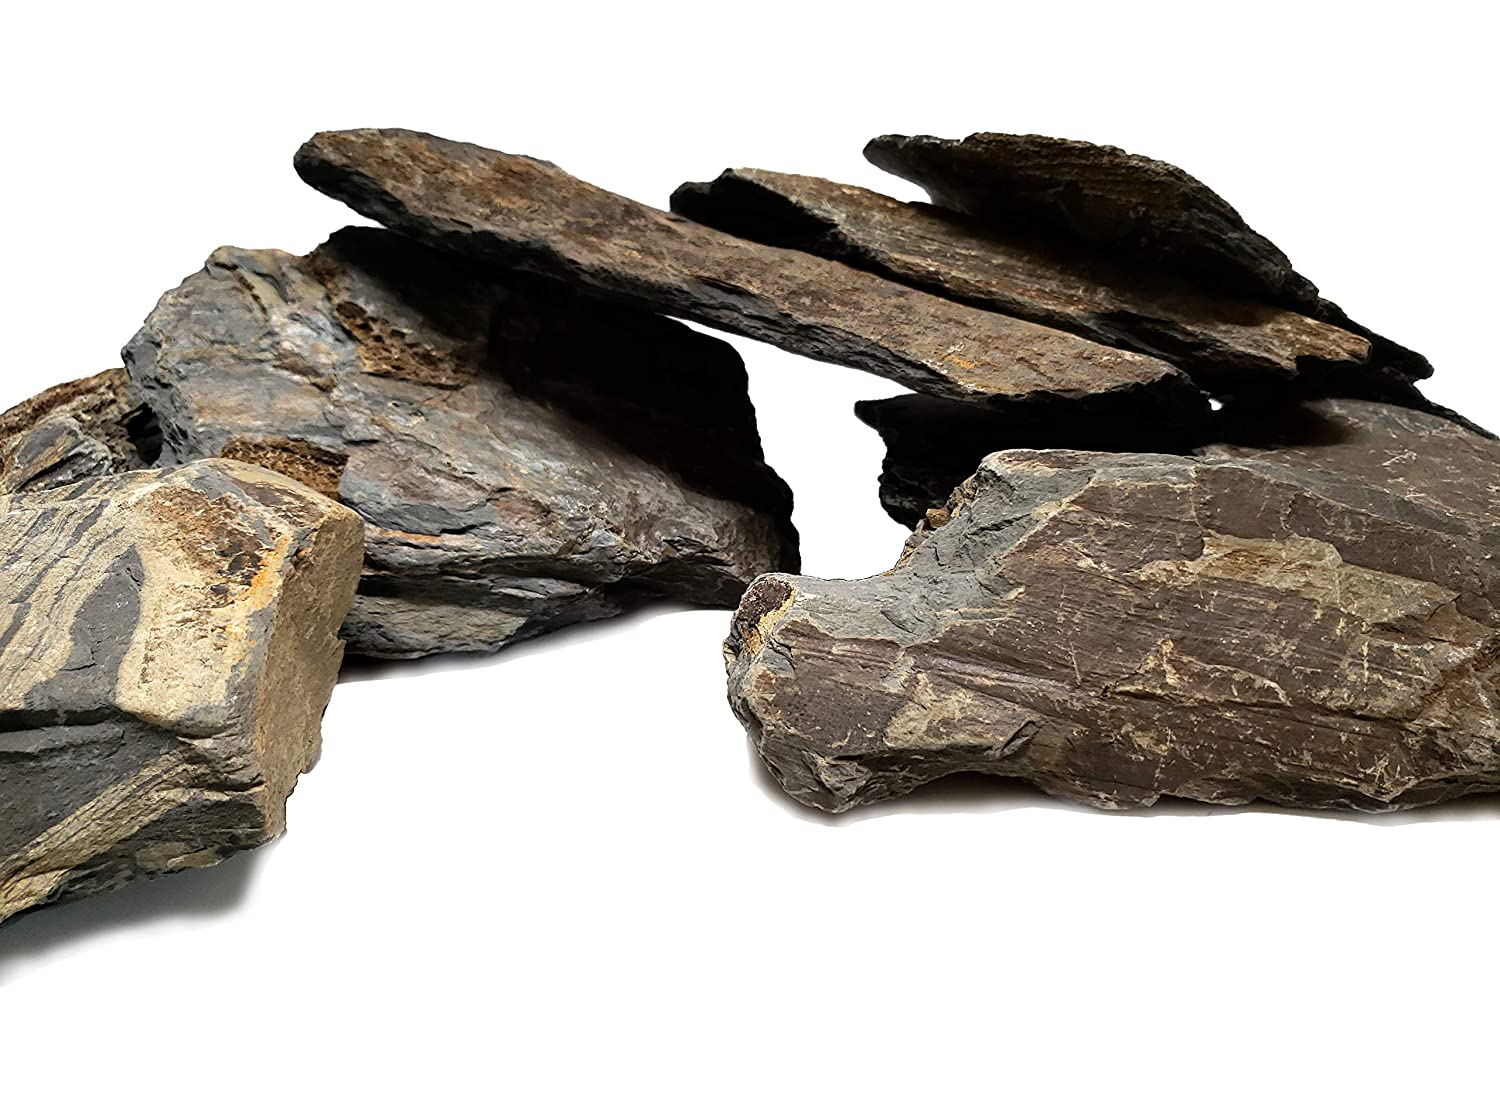 Perfect Rocks for Aquascaping Planted Aquariums Size 2 to 5 Inch 5 lbs Reptile and Amphibian Enclosures Natural Aquarium Stones Brown//Grey Slate Cichlid and Nano Tanks PH Neutral